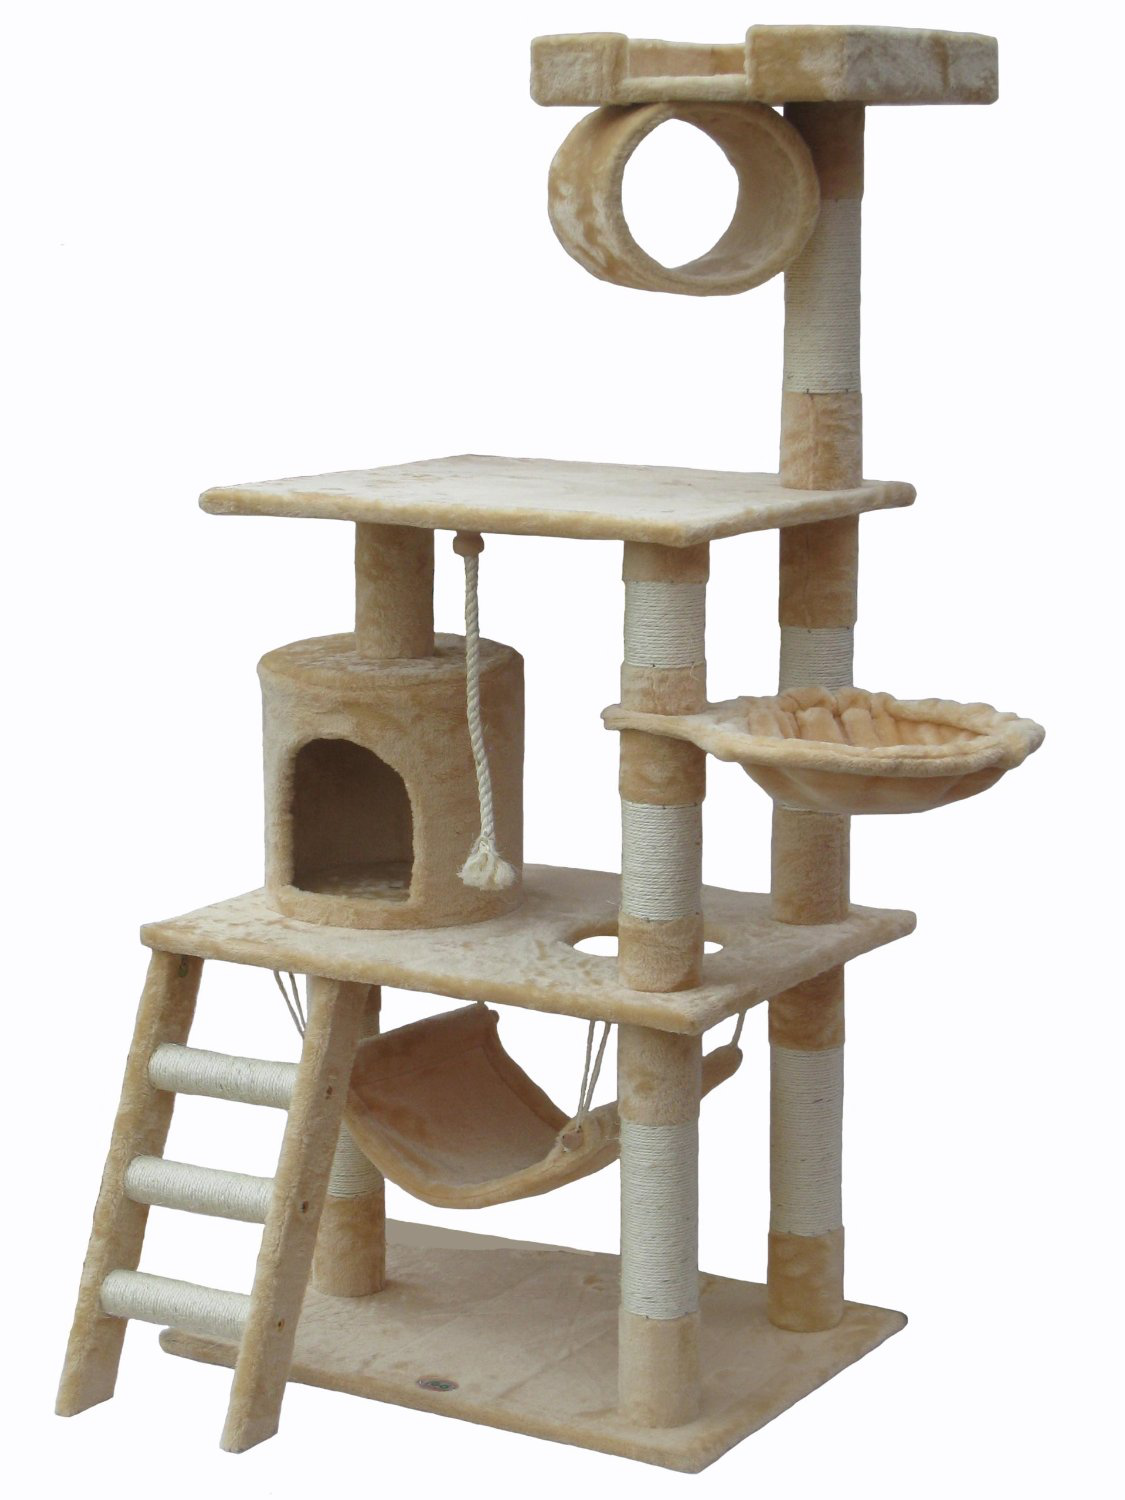 coolcattreehousecom helps you pick the best cat tree house cat  - cool cat tree house  time spent with a cat is never wasted